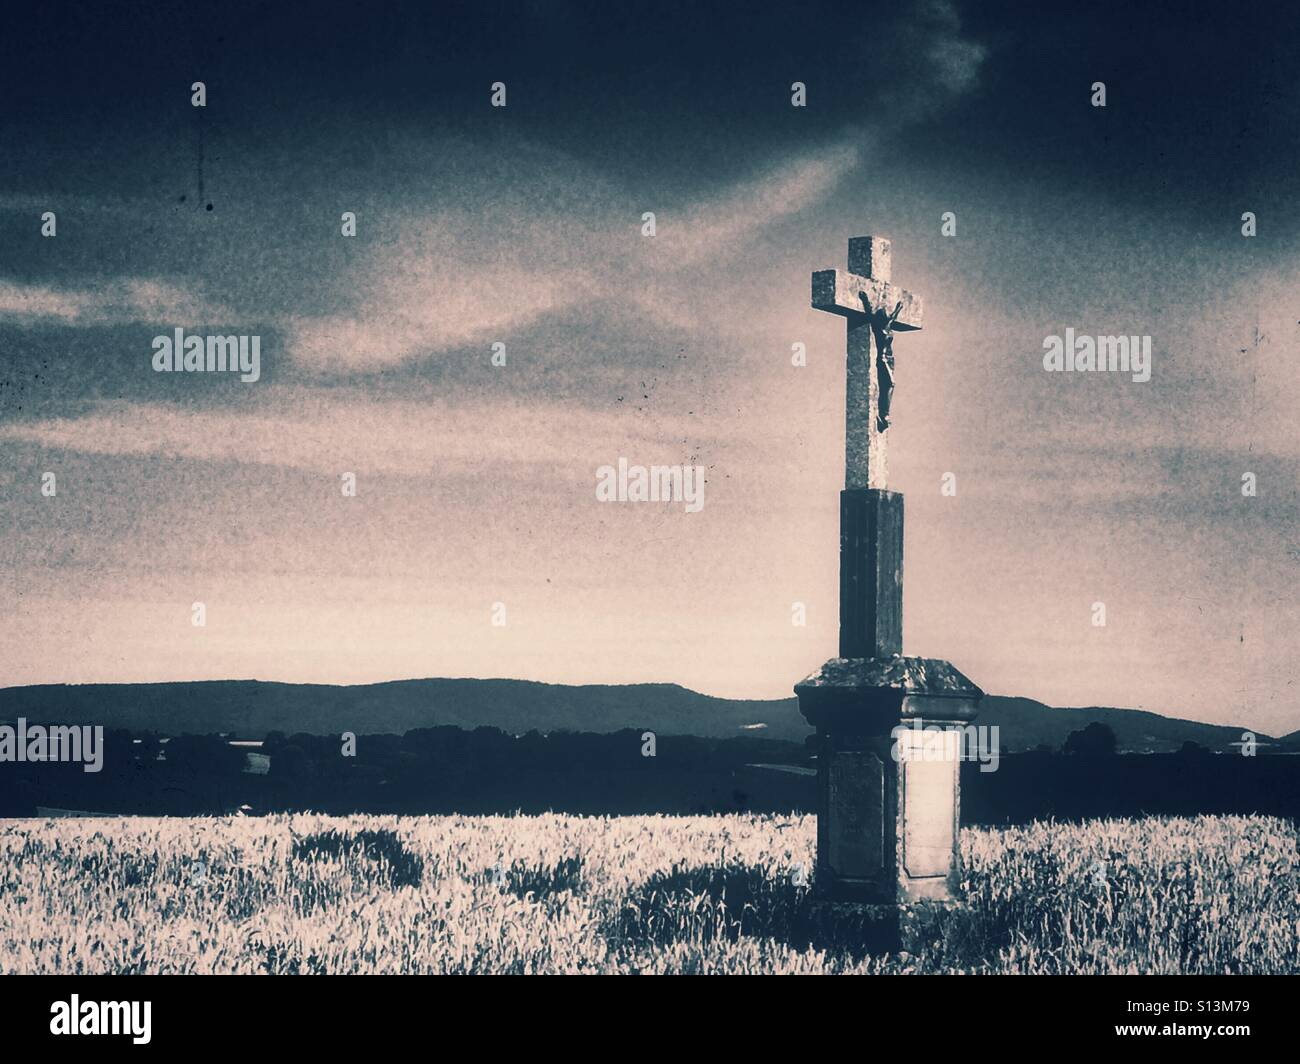 Cross in a field of wheat in retro view - Stock Image